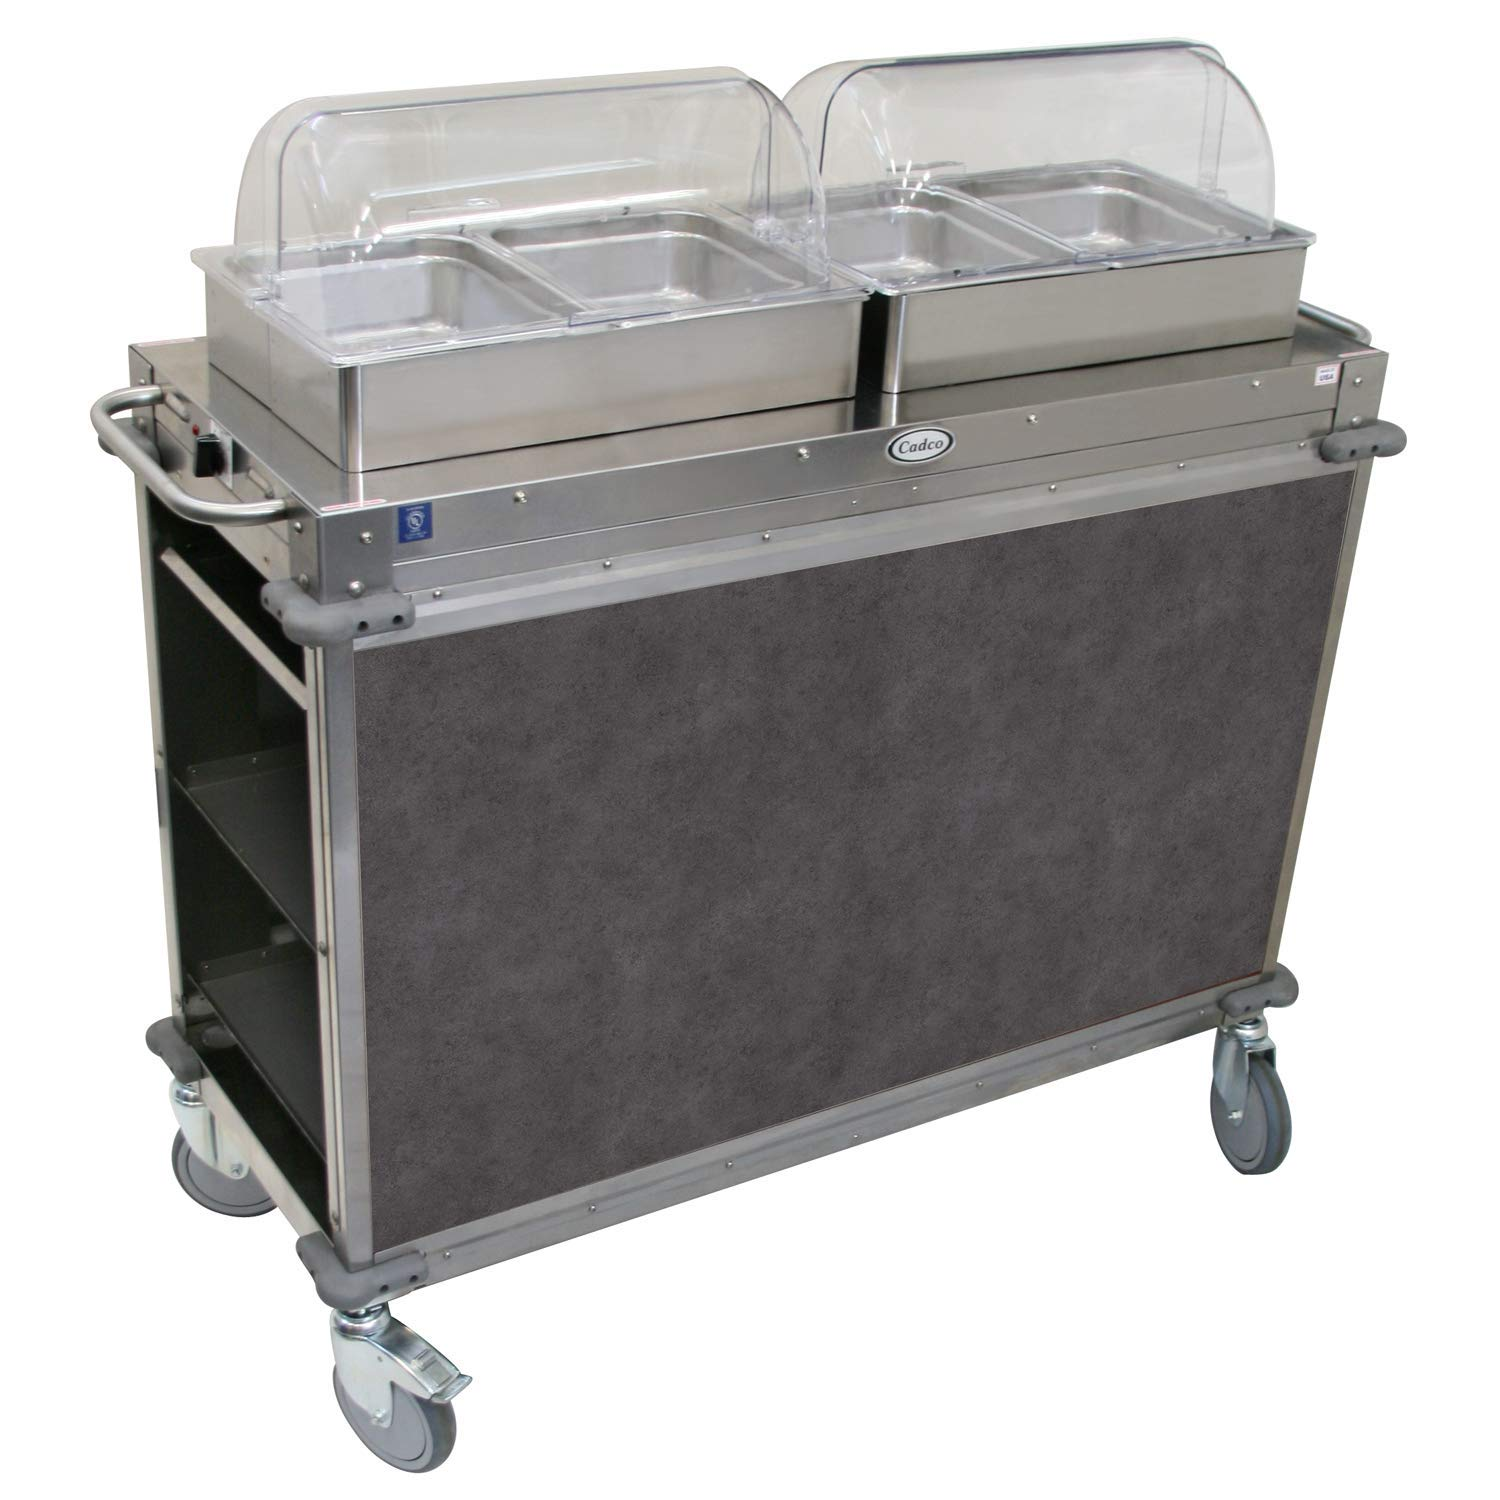 "Mobile Hot Buffet Cart Size: 51"" H x 52.75"" W x 20.75"" D, Color: Mission Smoke Grey"